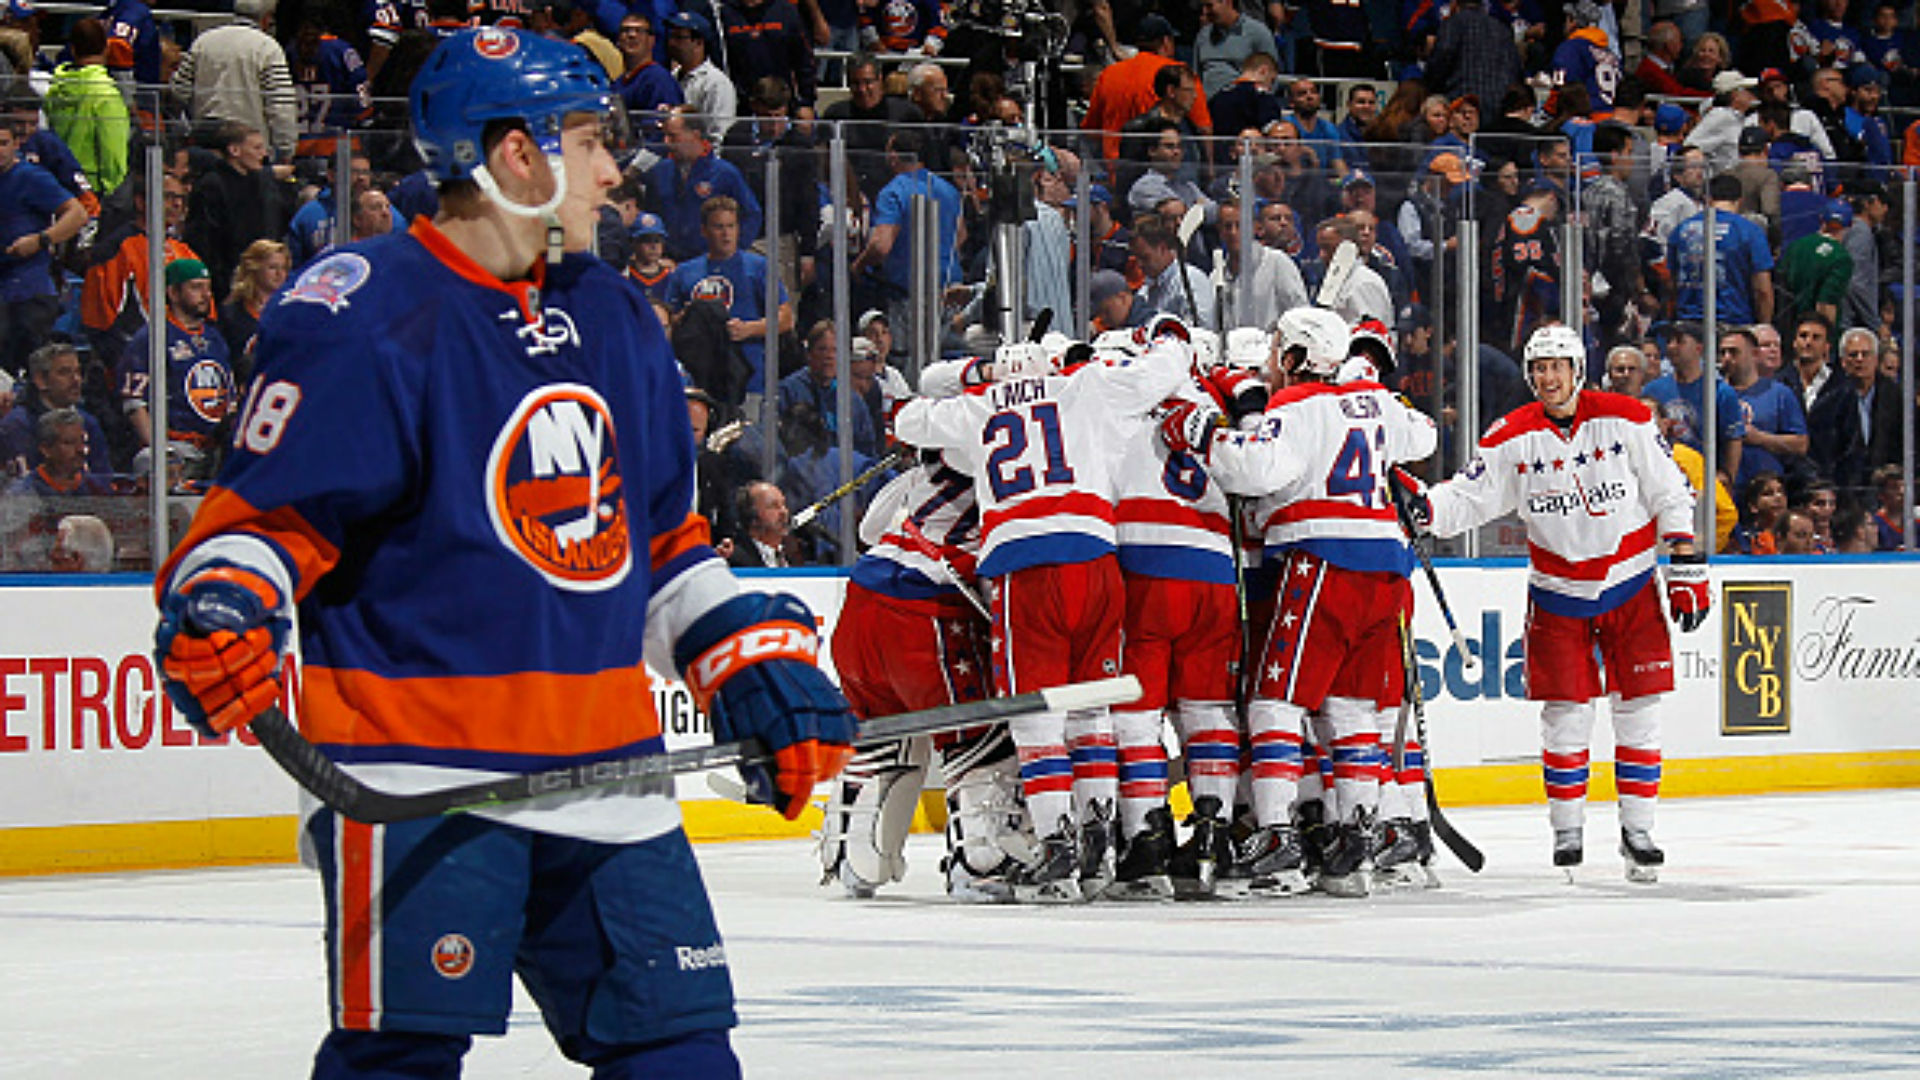 NHL playoff odds, betting lines and totals — this is it for Isles, Preds, Canucks